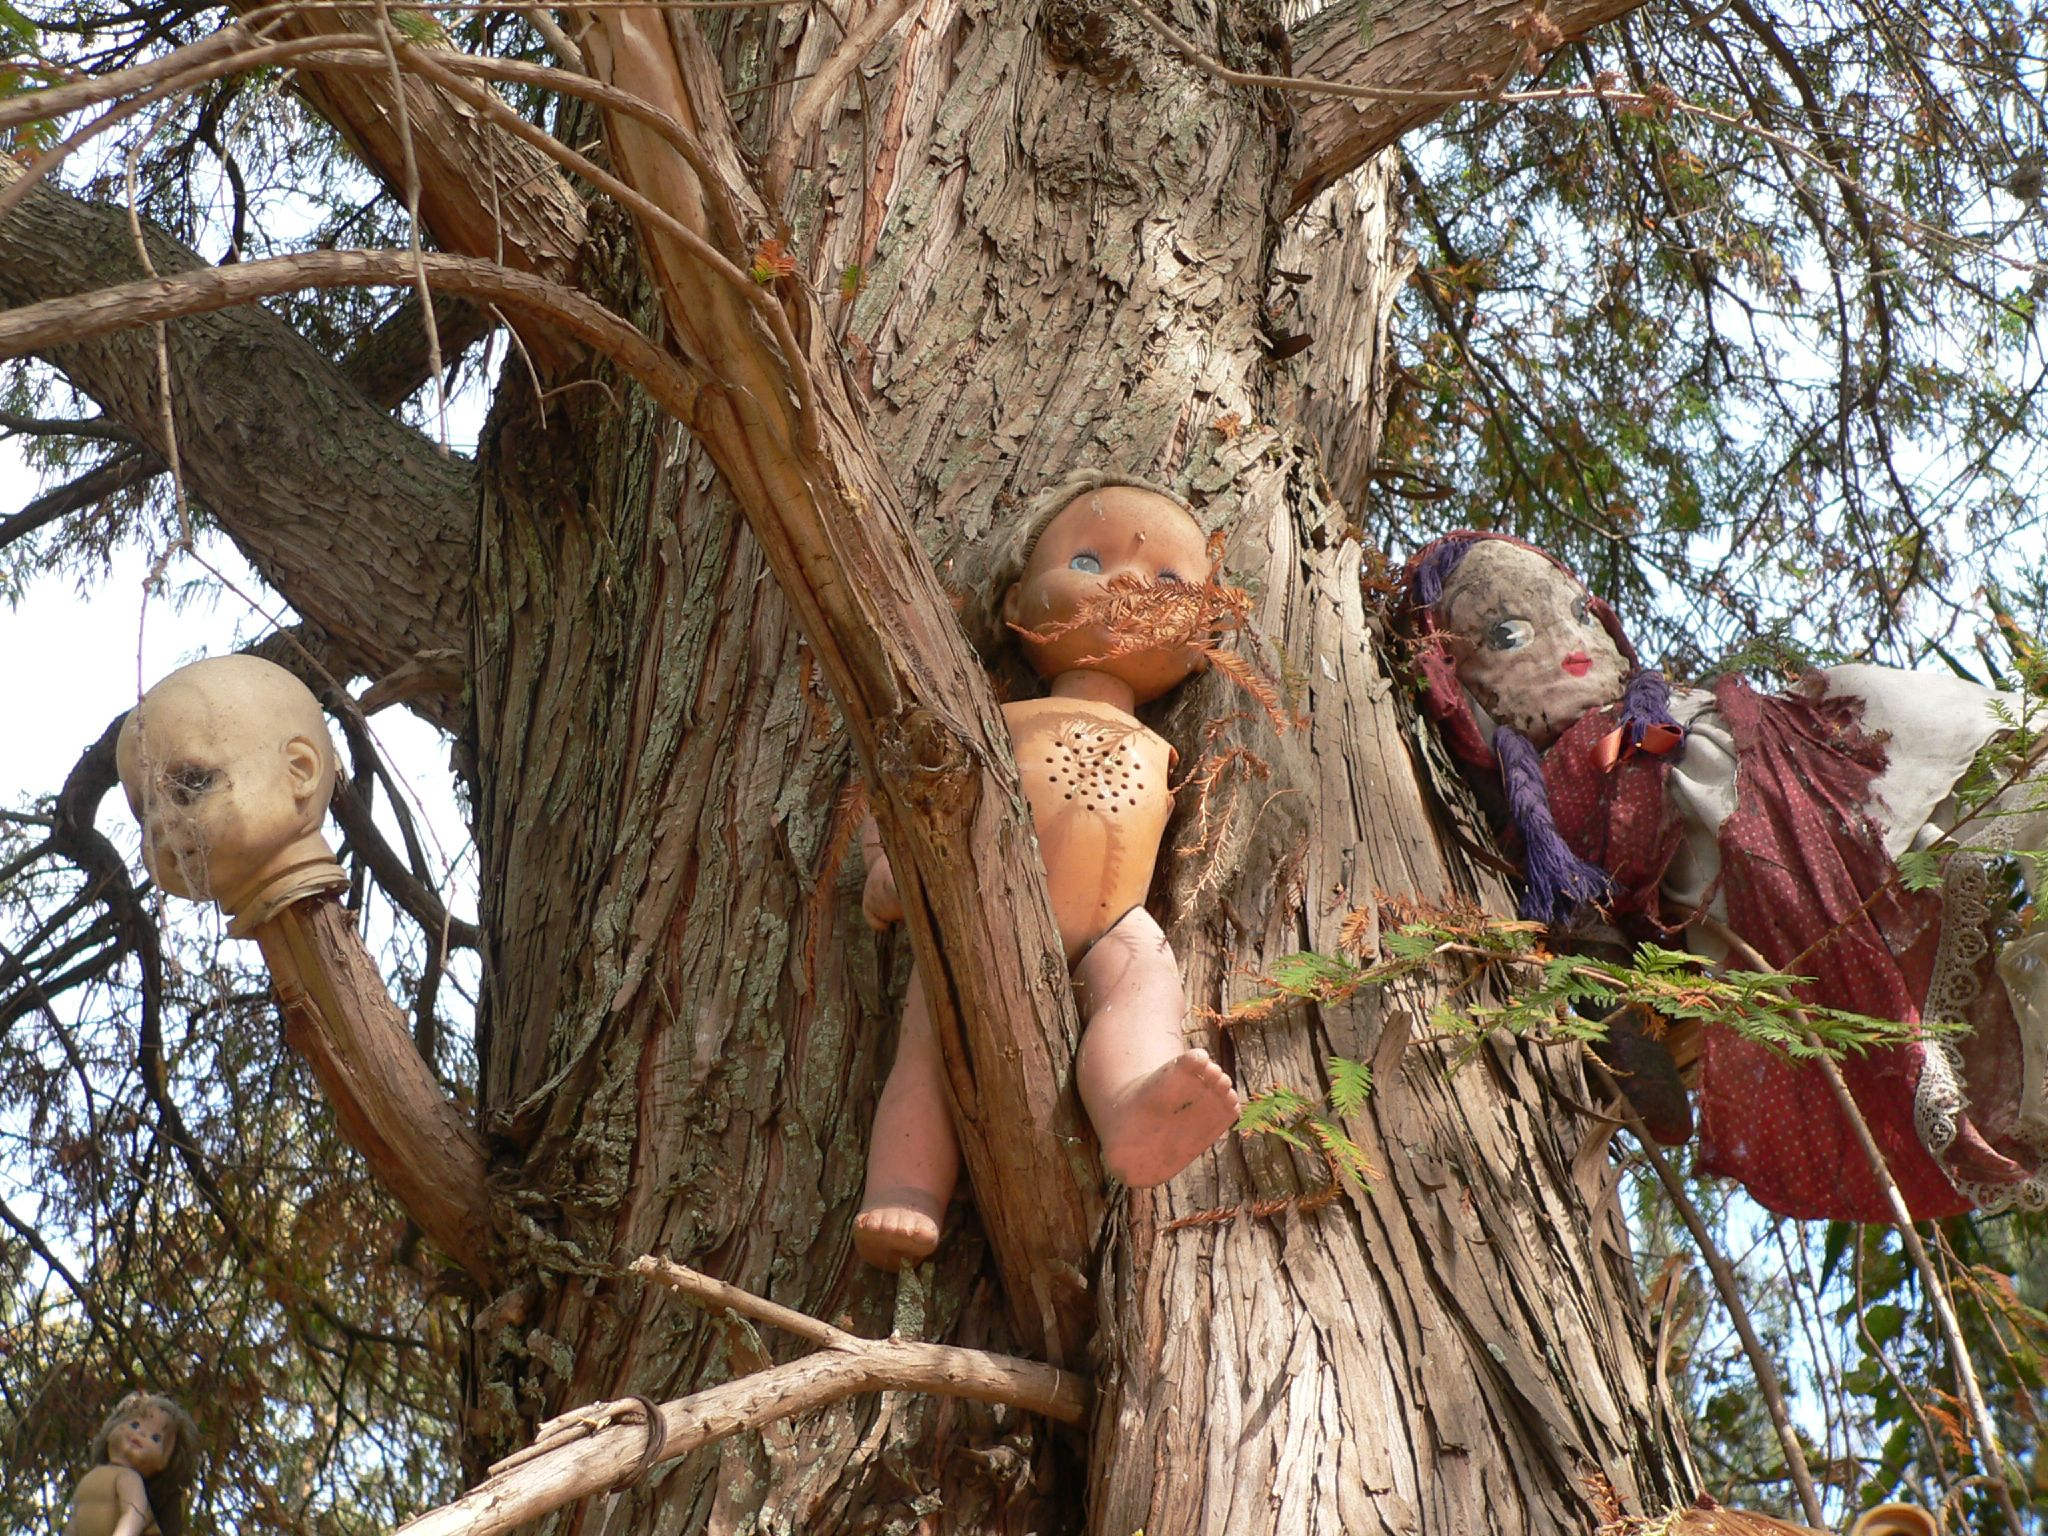 Island of Dolls is also known locally as the 'chinampas'